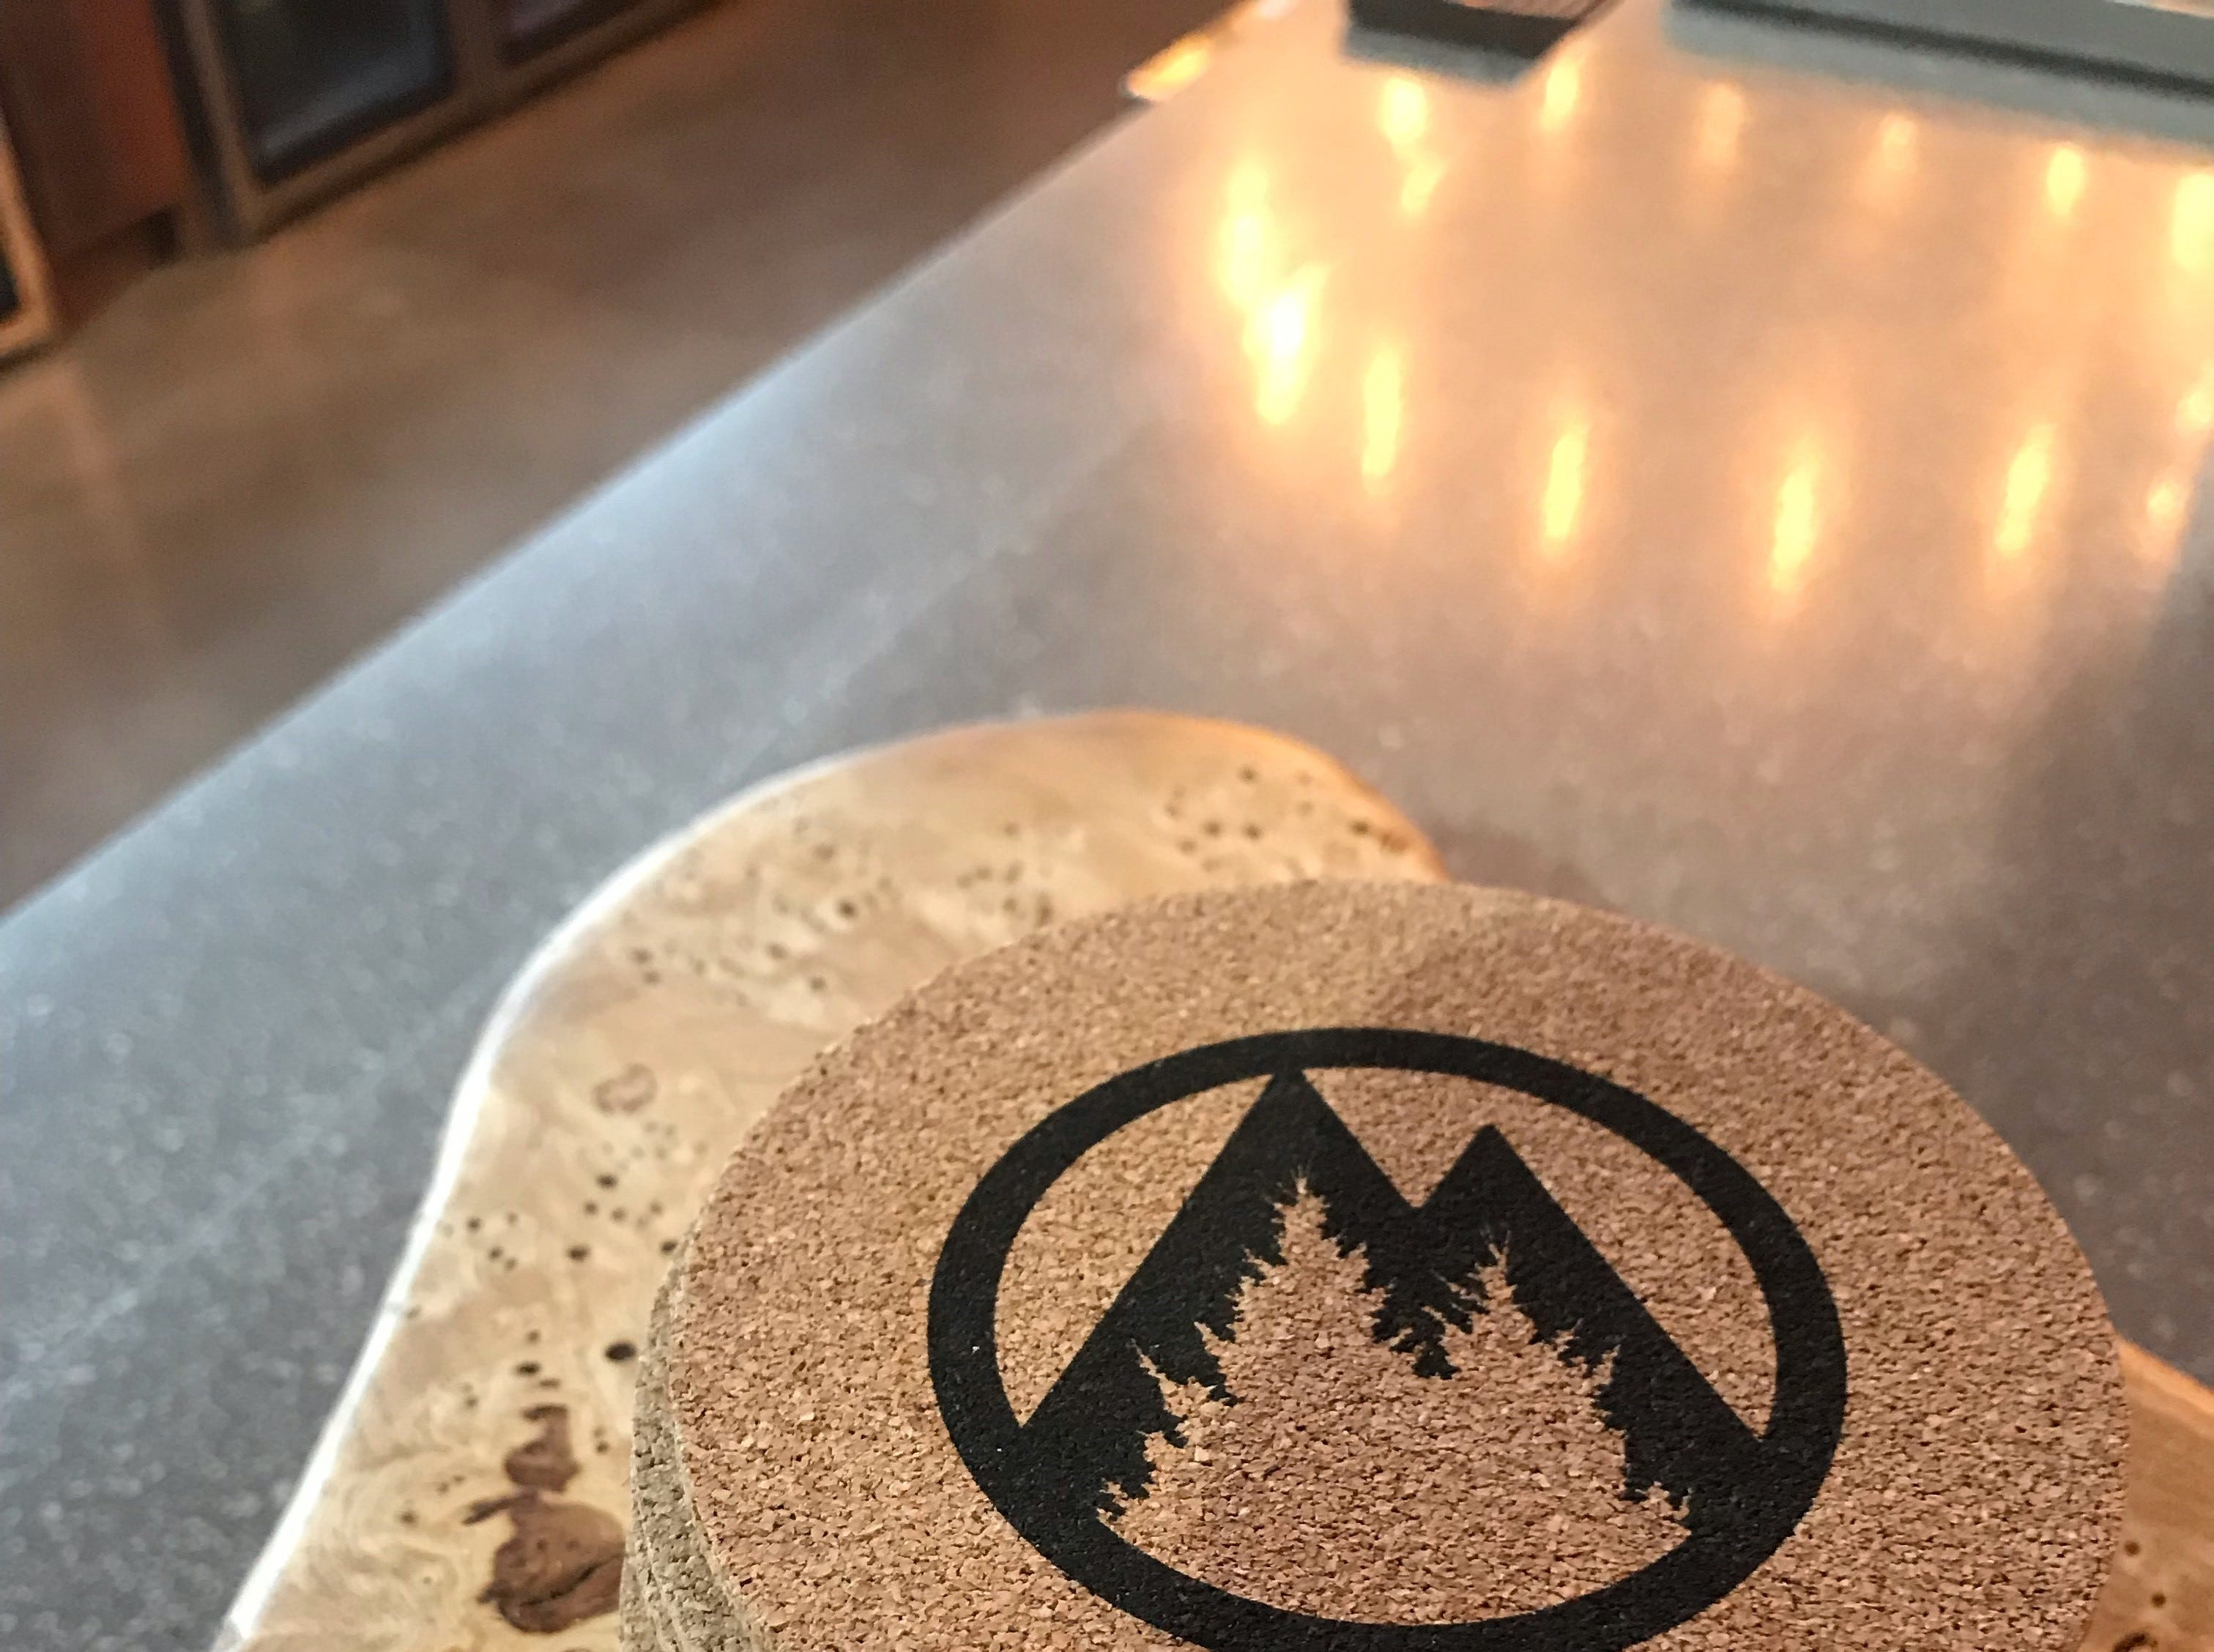 The Mosinee Brewing Company logo is displayed on coasters and napkins around the bar.